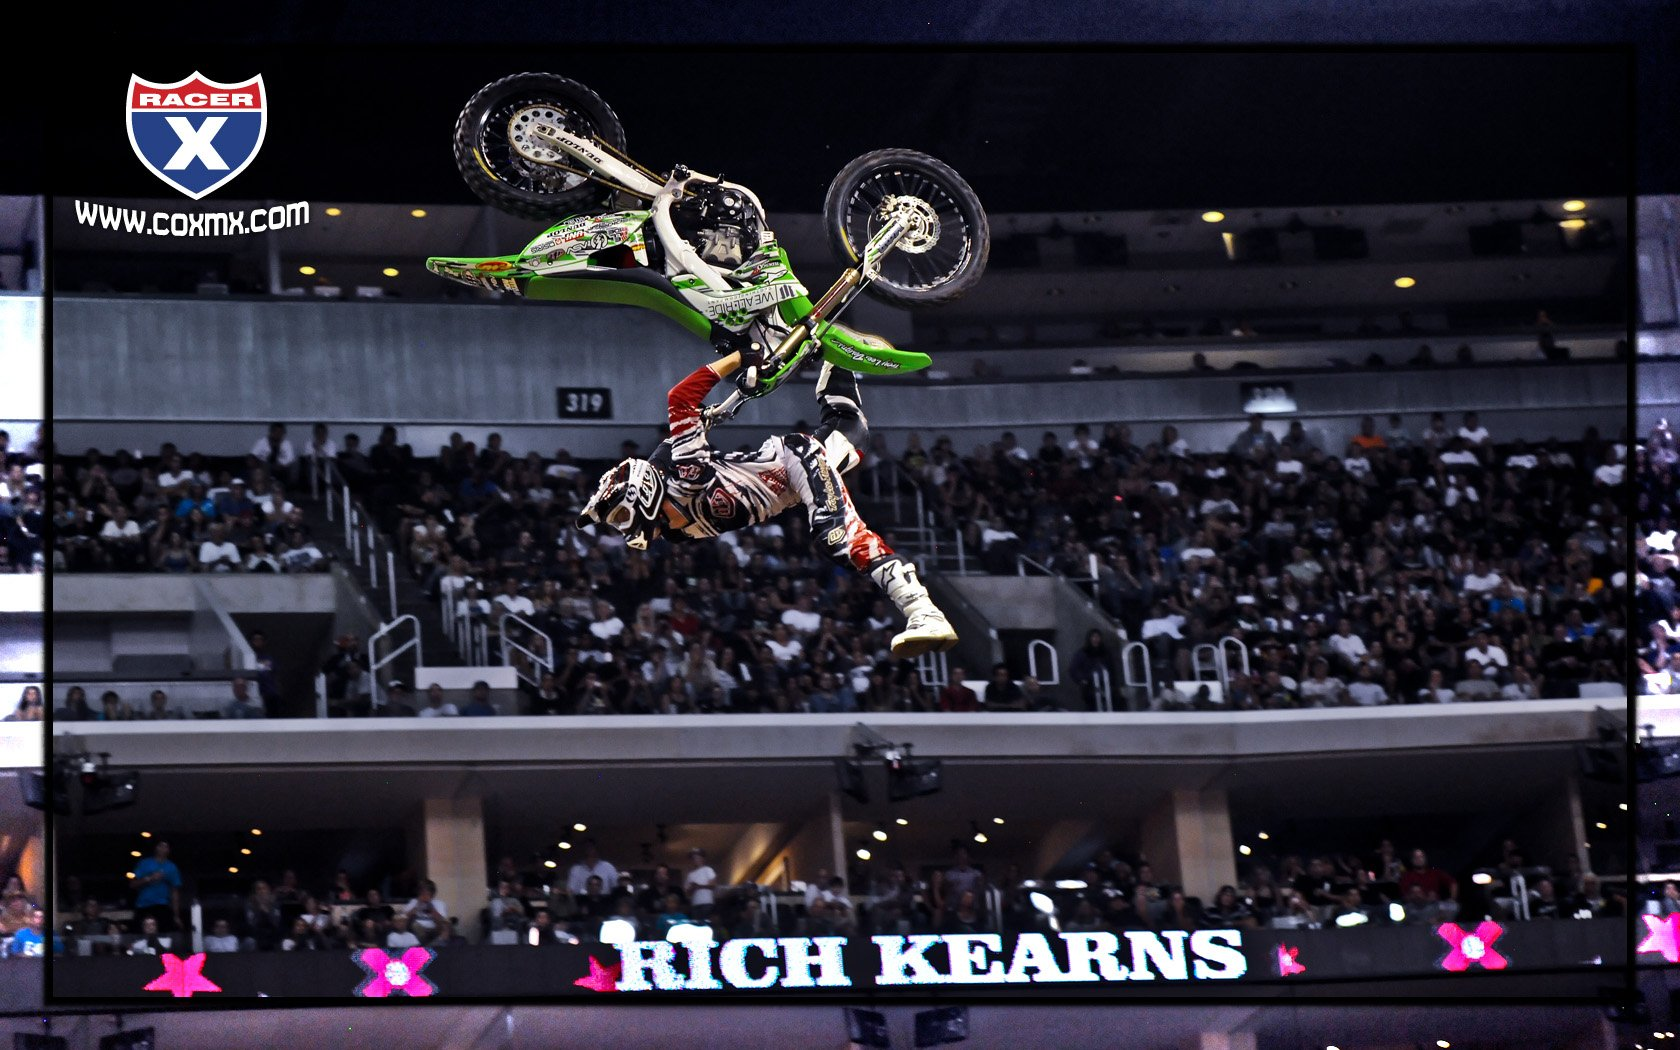 X games wallpapers racer x online kearns rich kearns backflip variation during best trick voltagebd Image collections